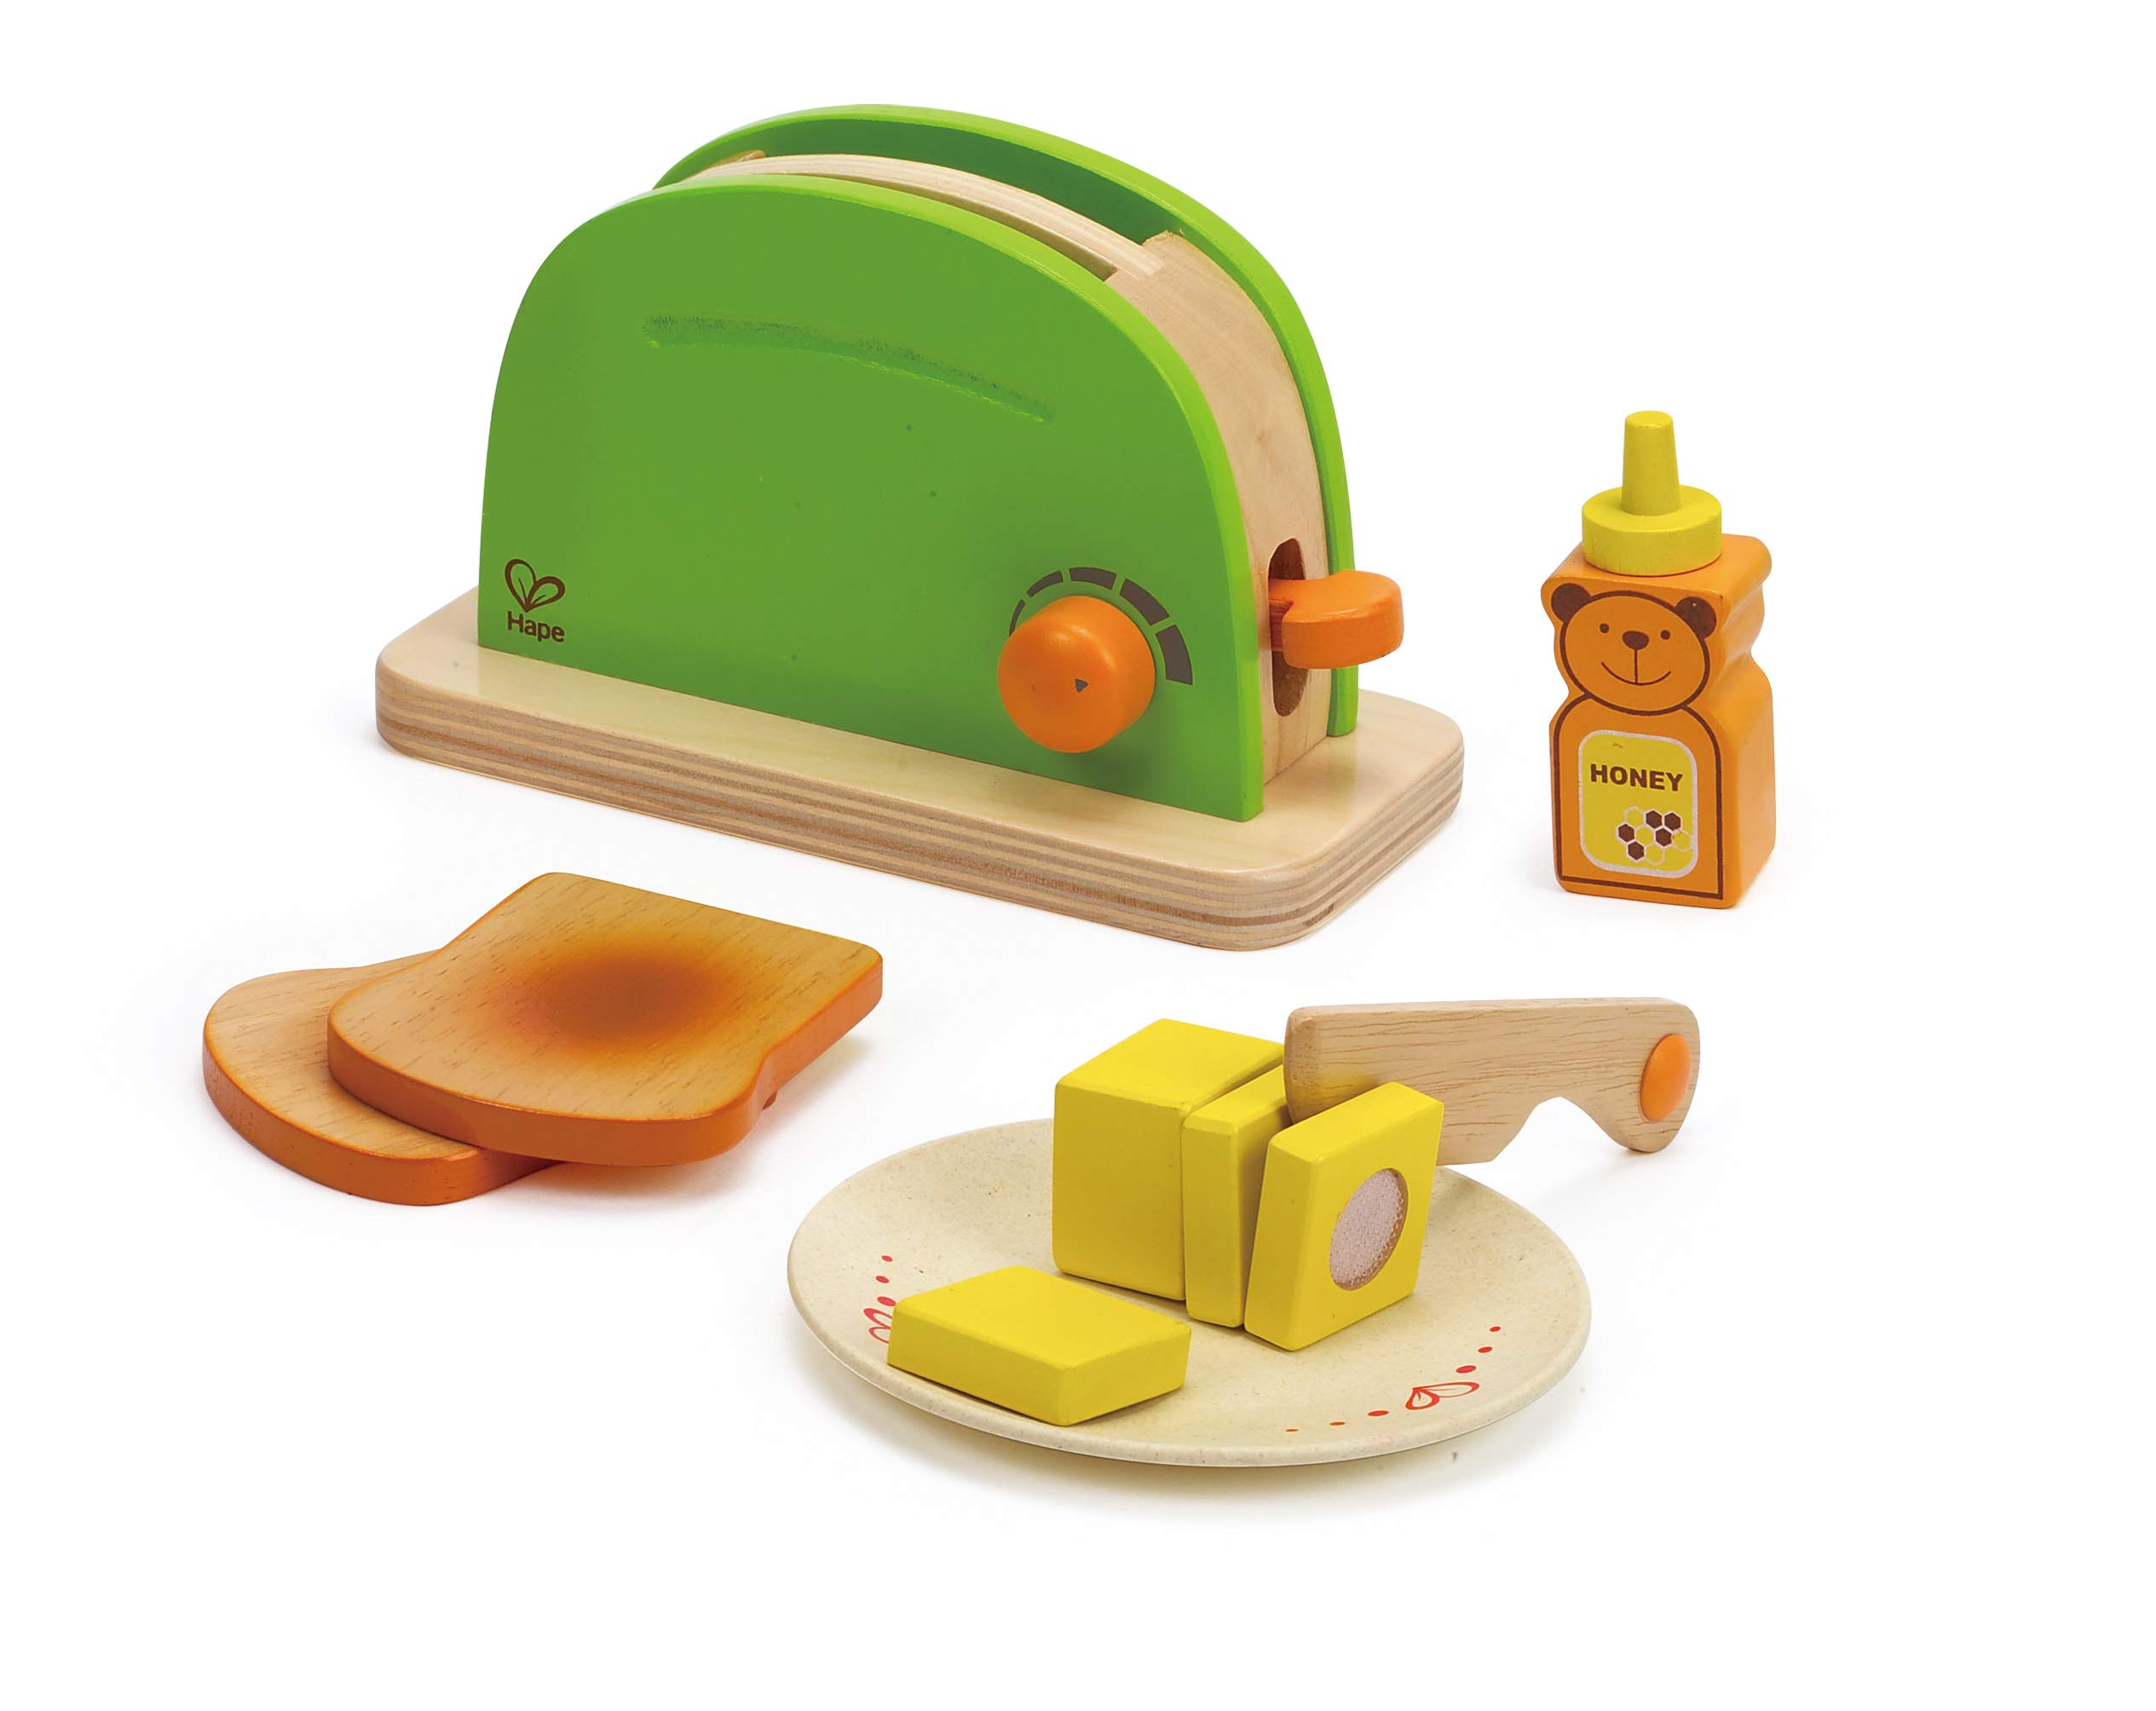 Hape Pop Up Toaster Wooden Play Kitchen Set with Accessories by Hape